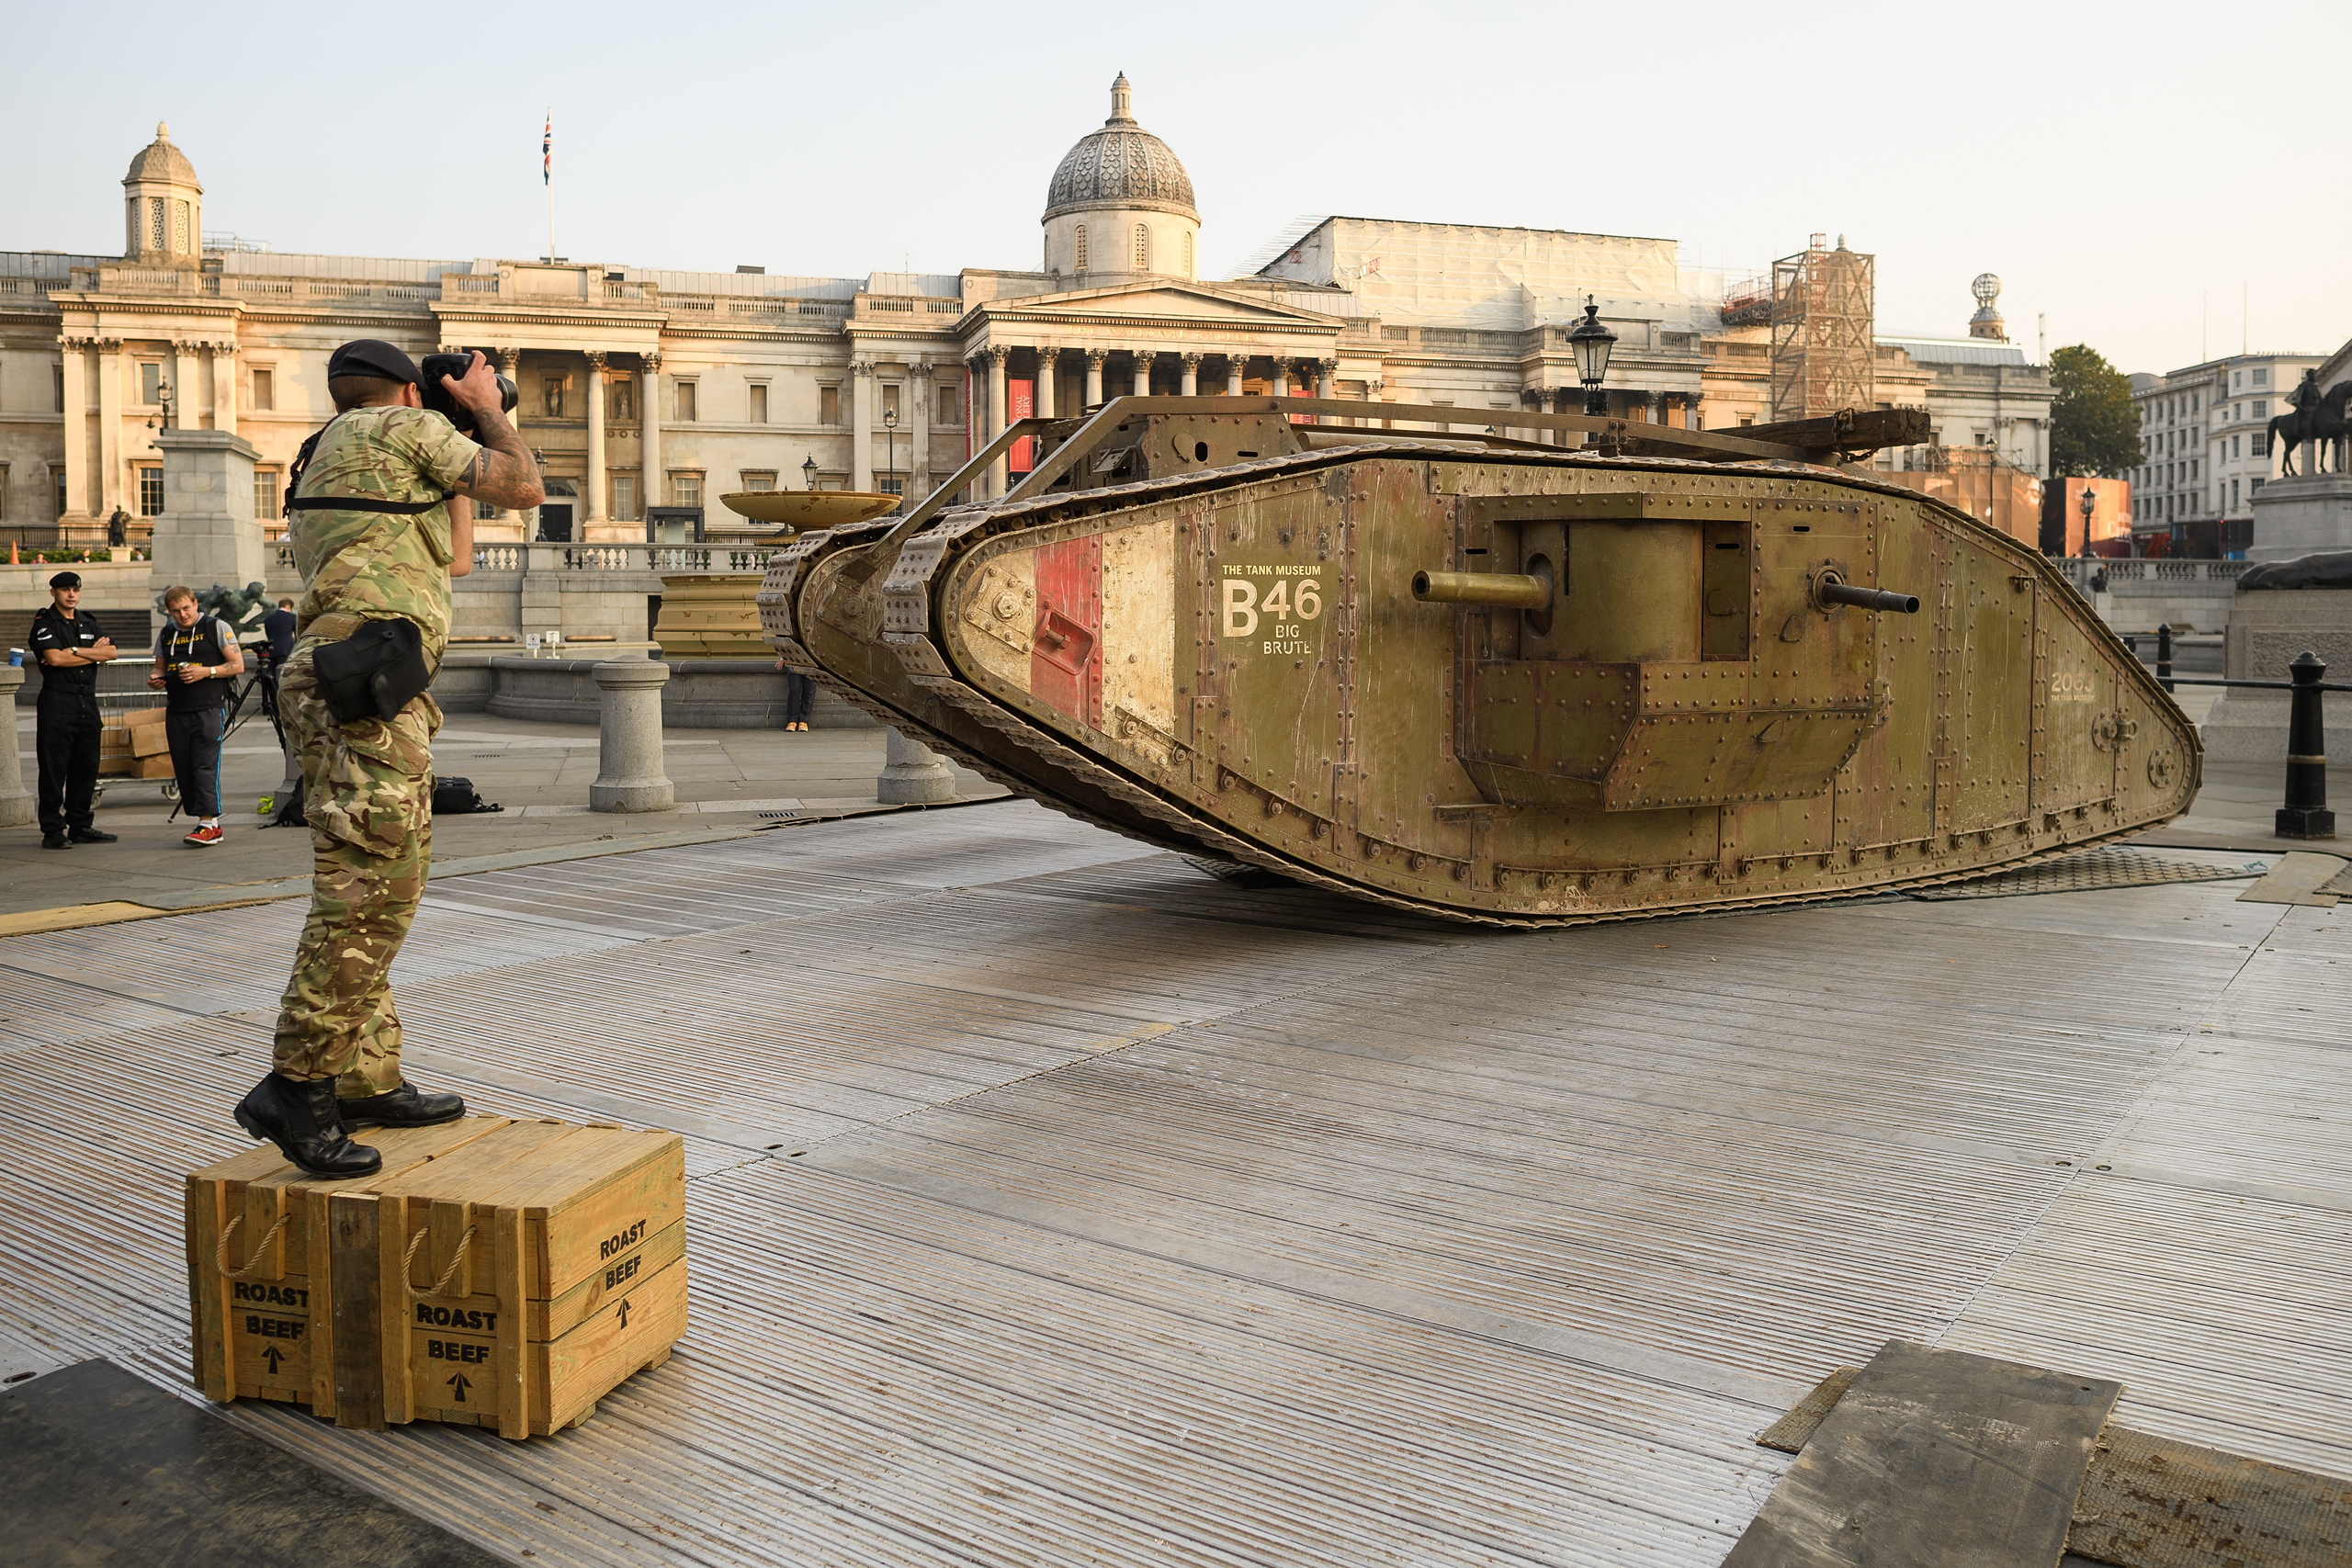 An Army photographer takes a photograph of a replica British Mark IV tank as it is displayed in Trafalgar Square in London on Sept. 15, 2016.